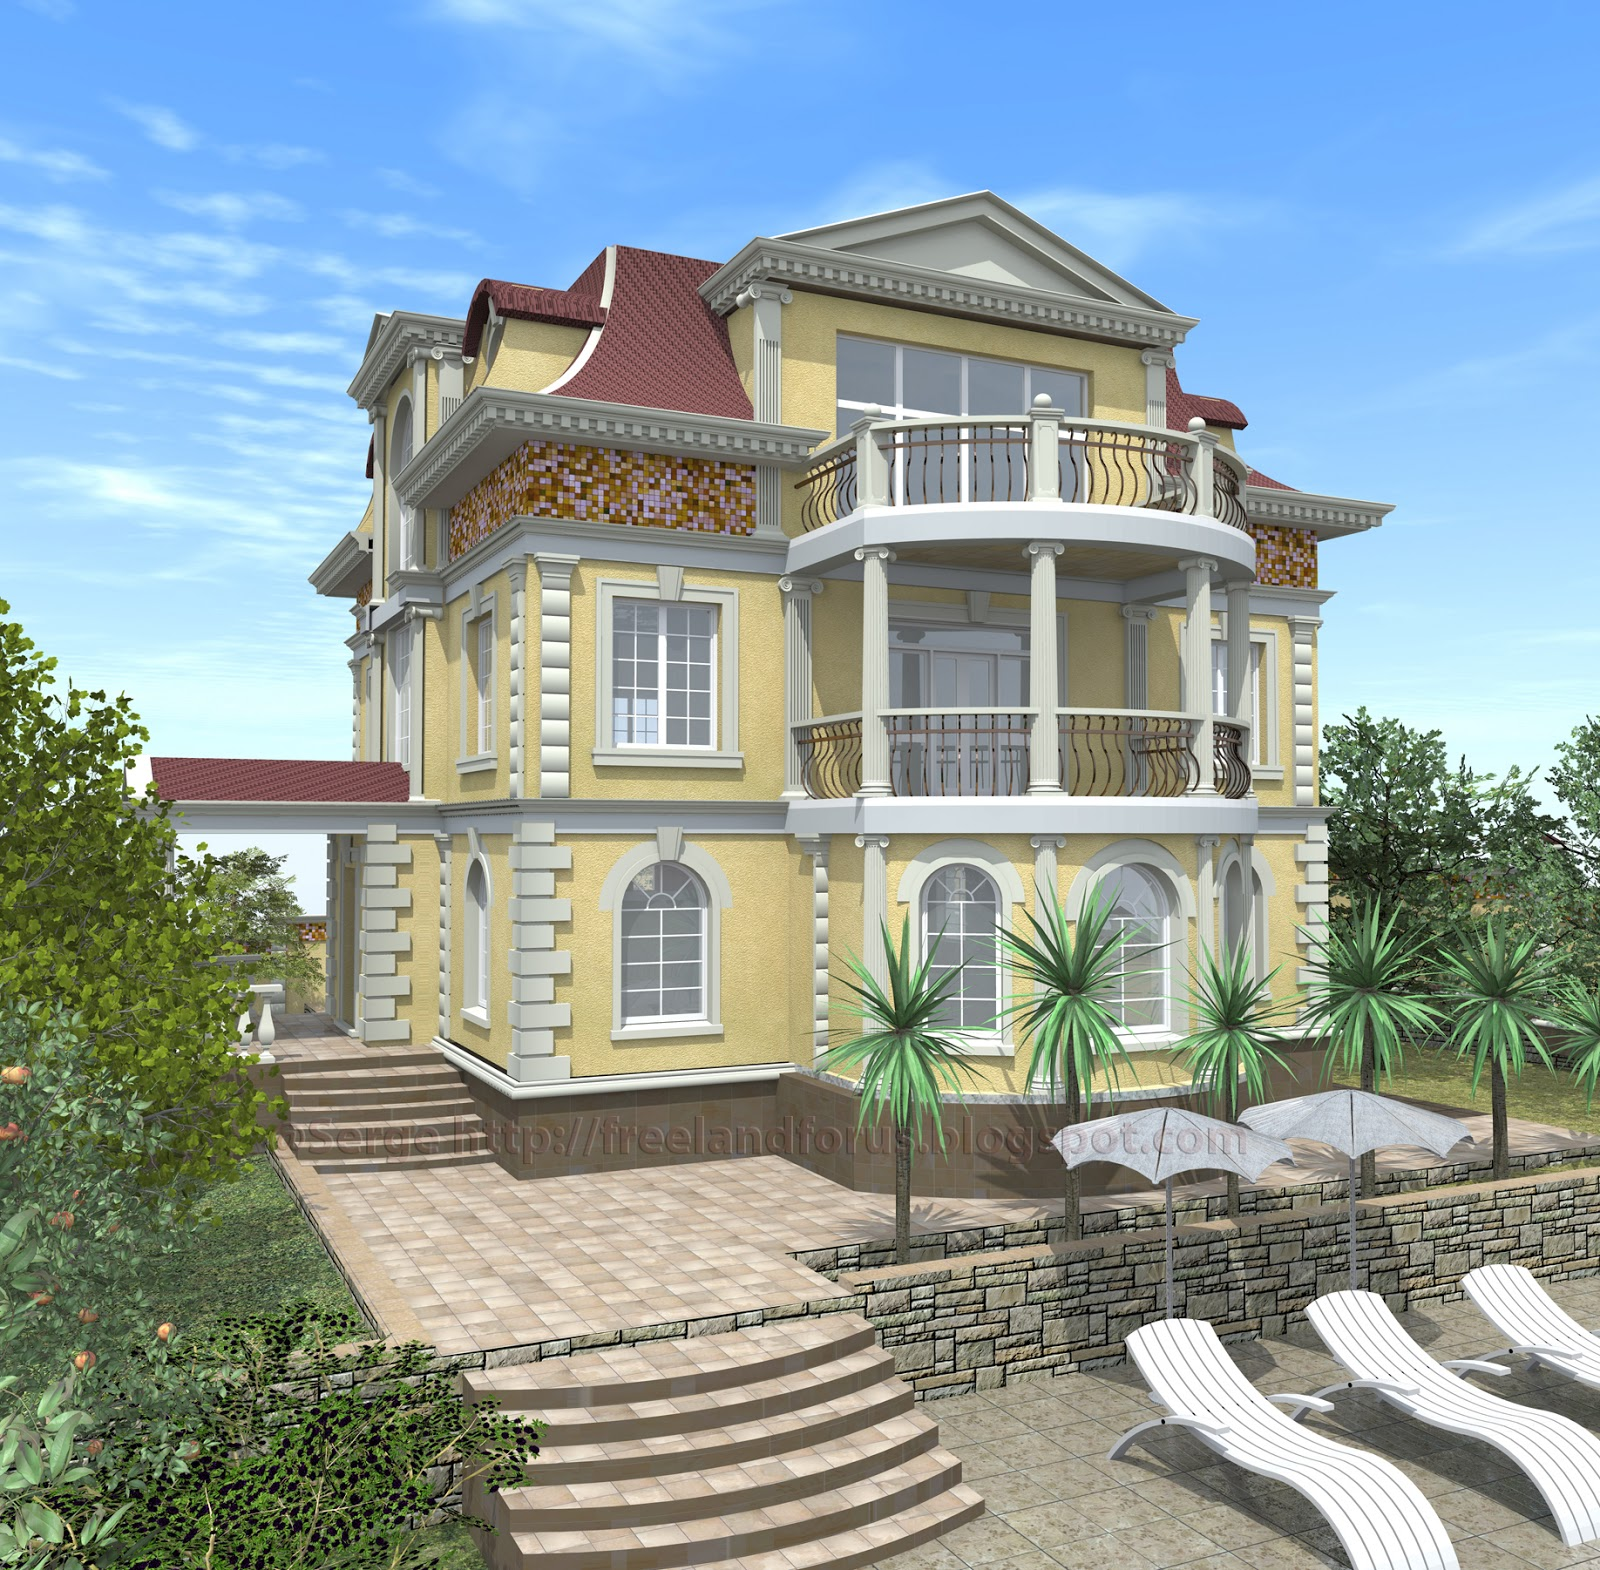 By Design Greek Revival House Plans Are Ideal For Large Family Homes